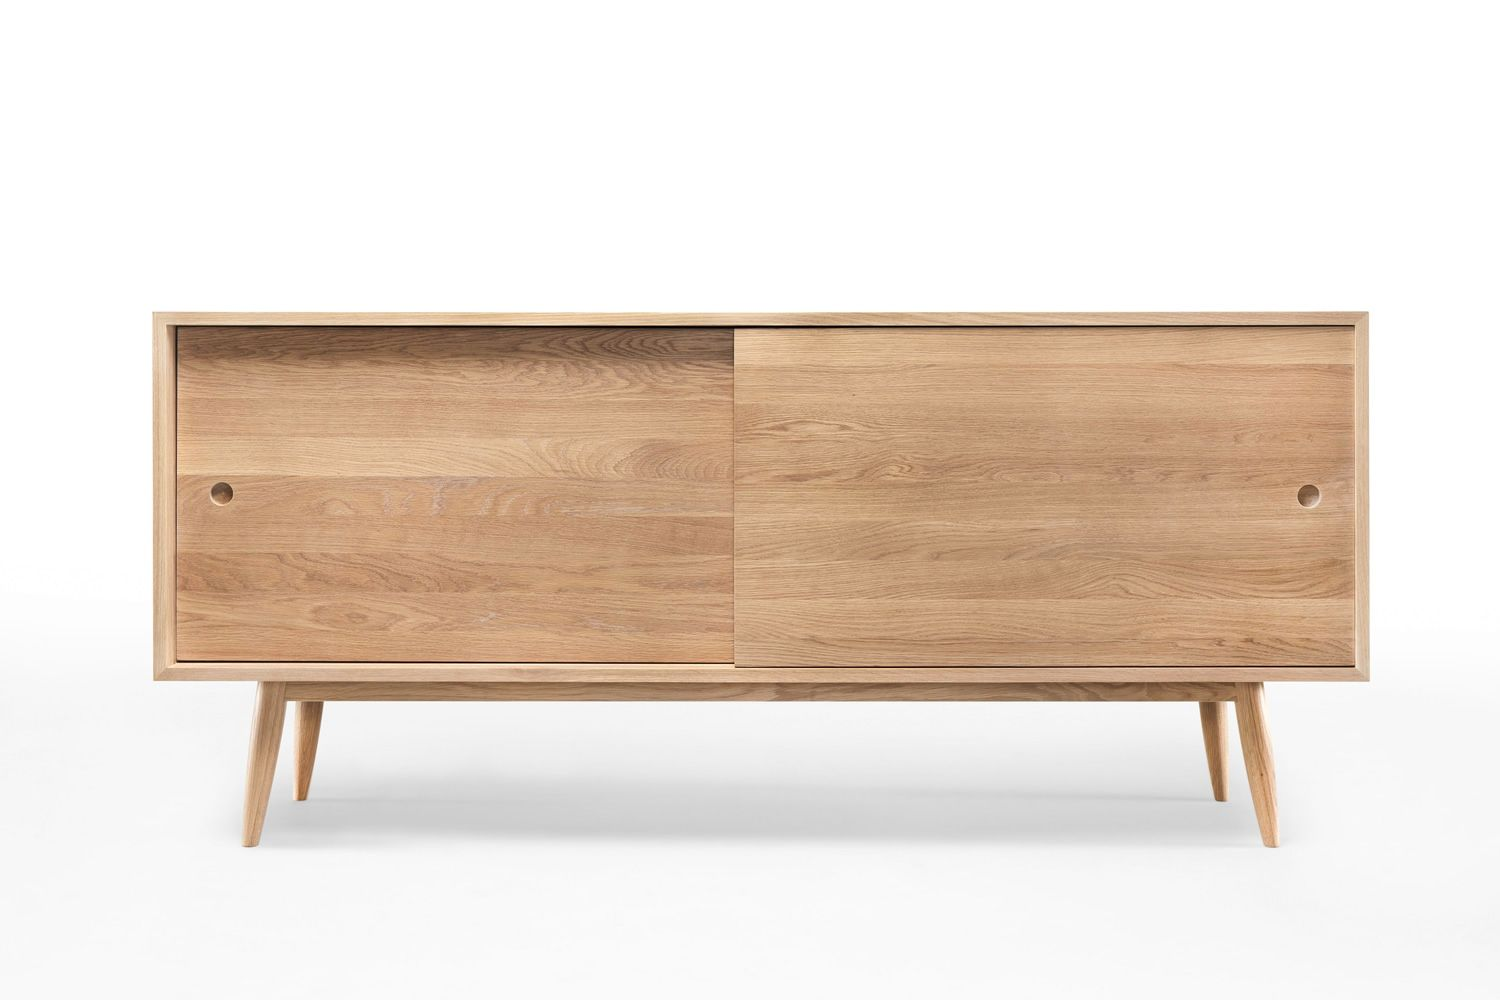 Oak Wooden Sideboard With Sliding Doors Shelves And Drawers